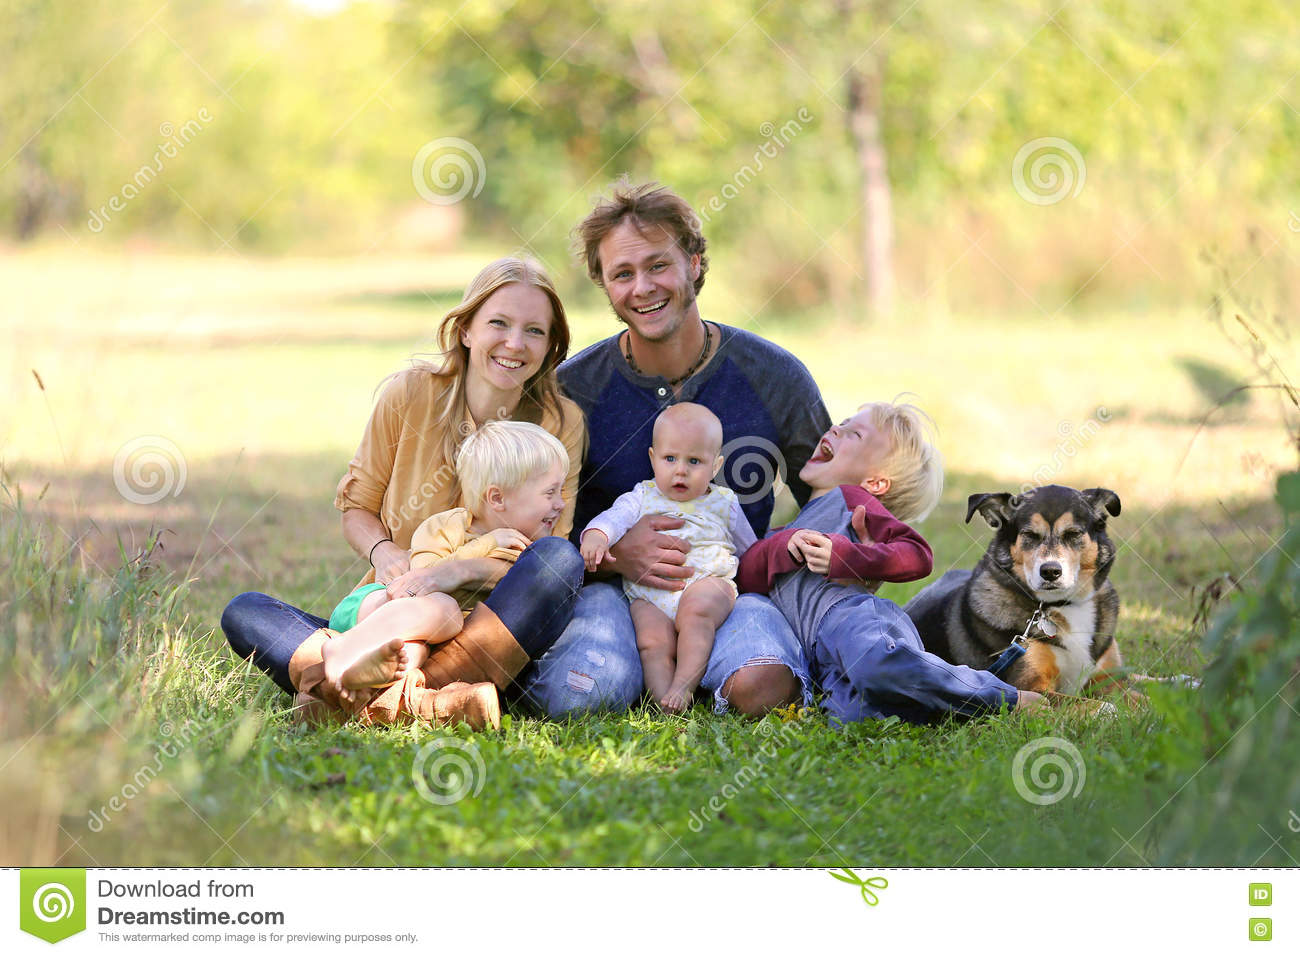 family animals humans